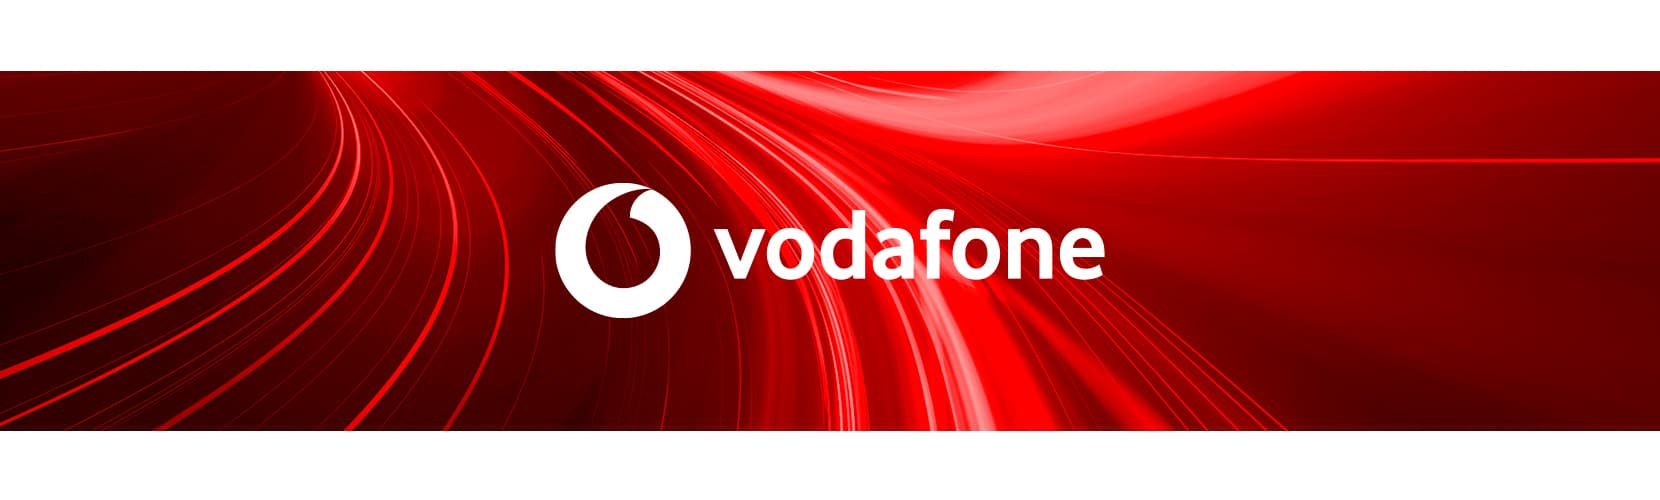 vodafone internet móvel